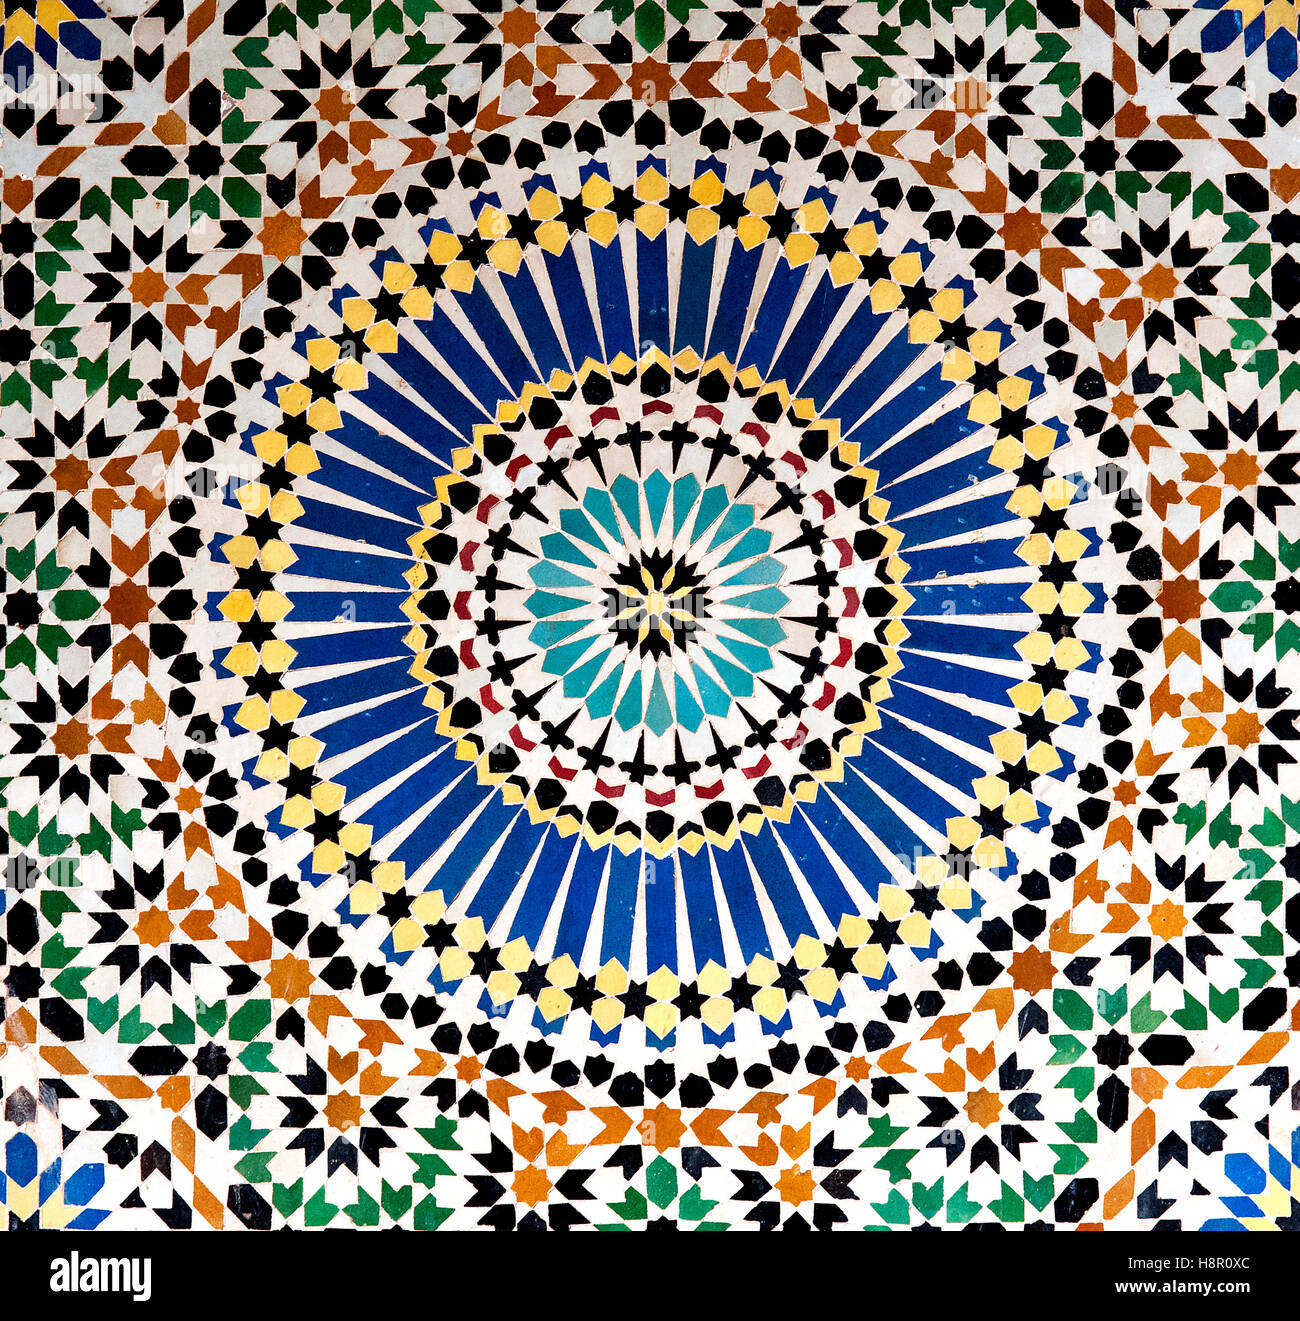 Mosaic, Kasbah Telouet, Morocco: the colorful geometric patterns of an  Islamic mosaic decorate